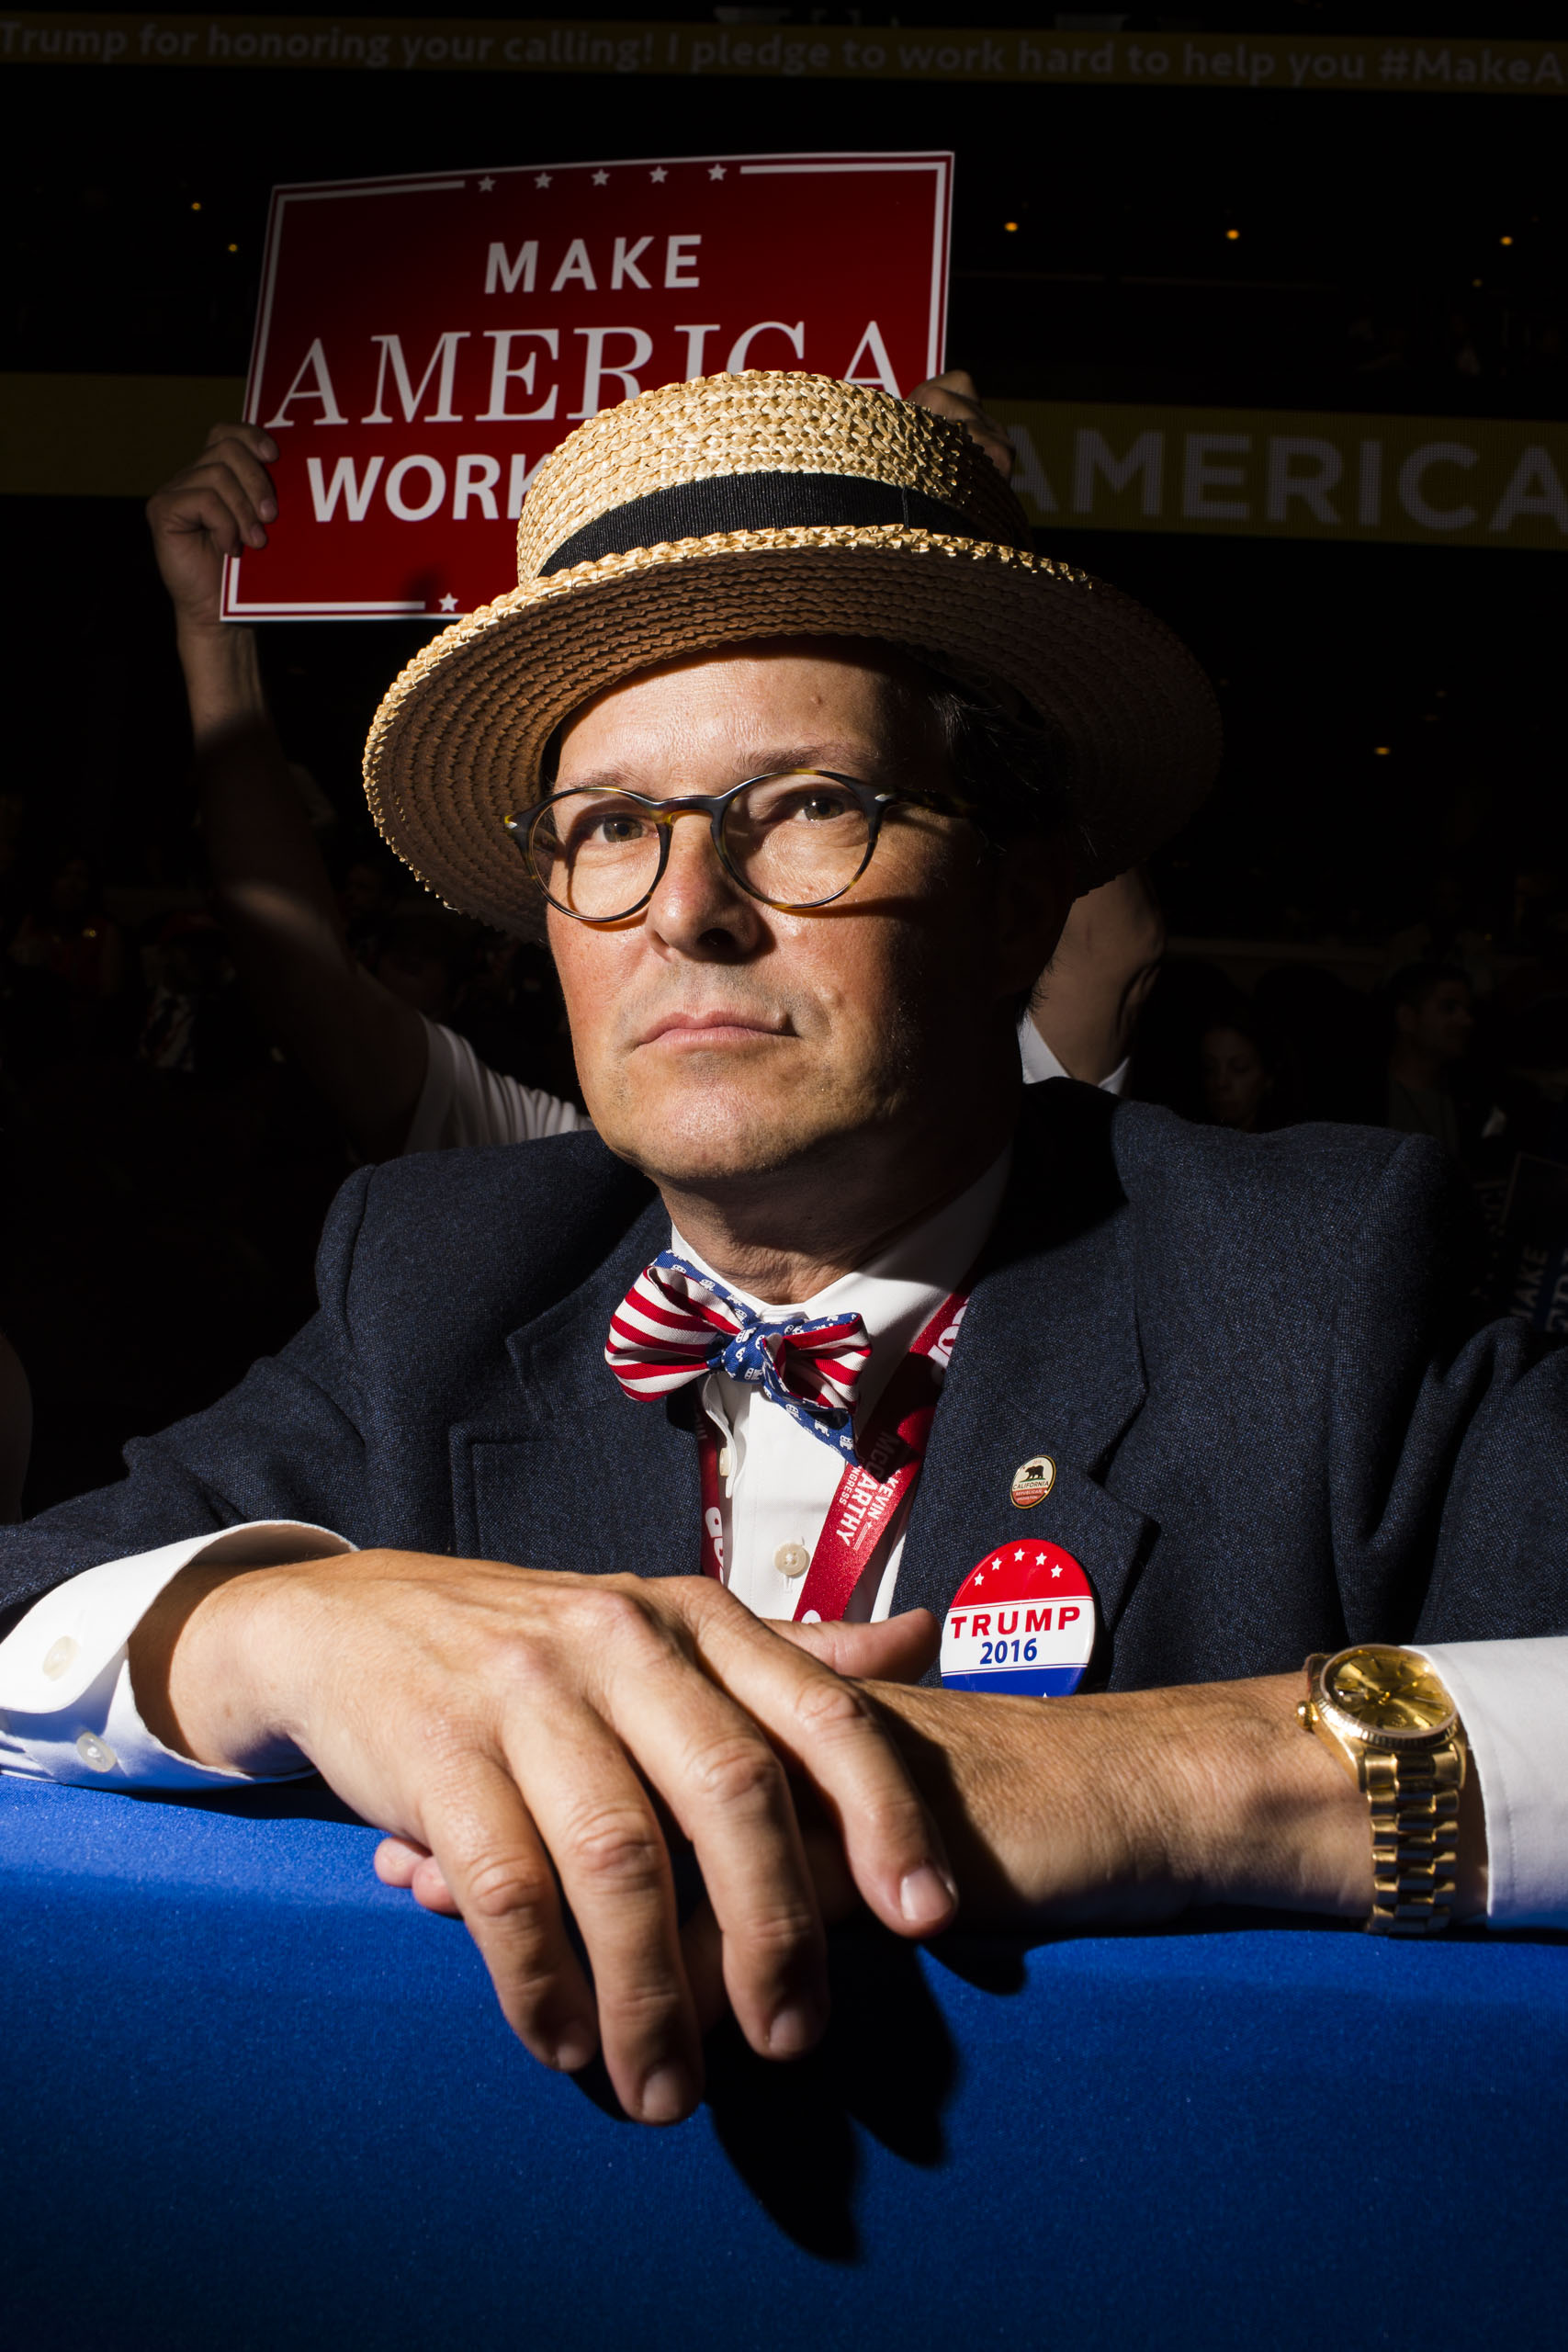 A man attends the 2016 Republican National Convention in Cleveland on Tuesday, July 19, 2016.